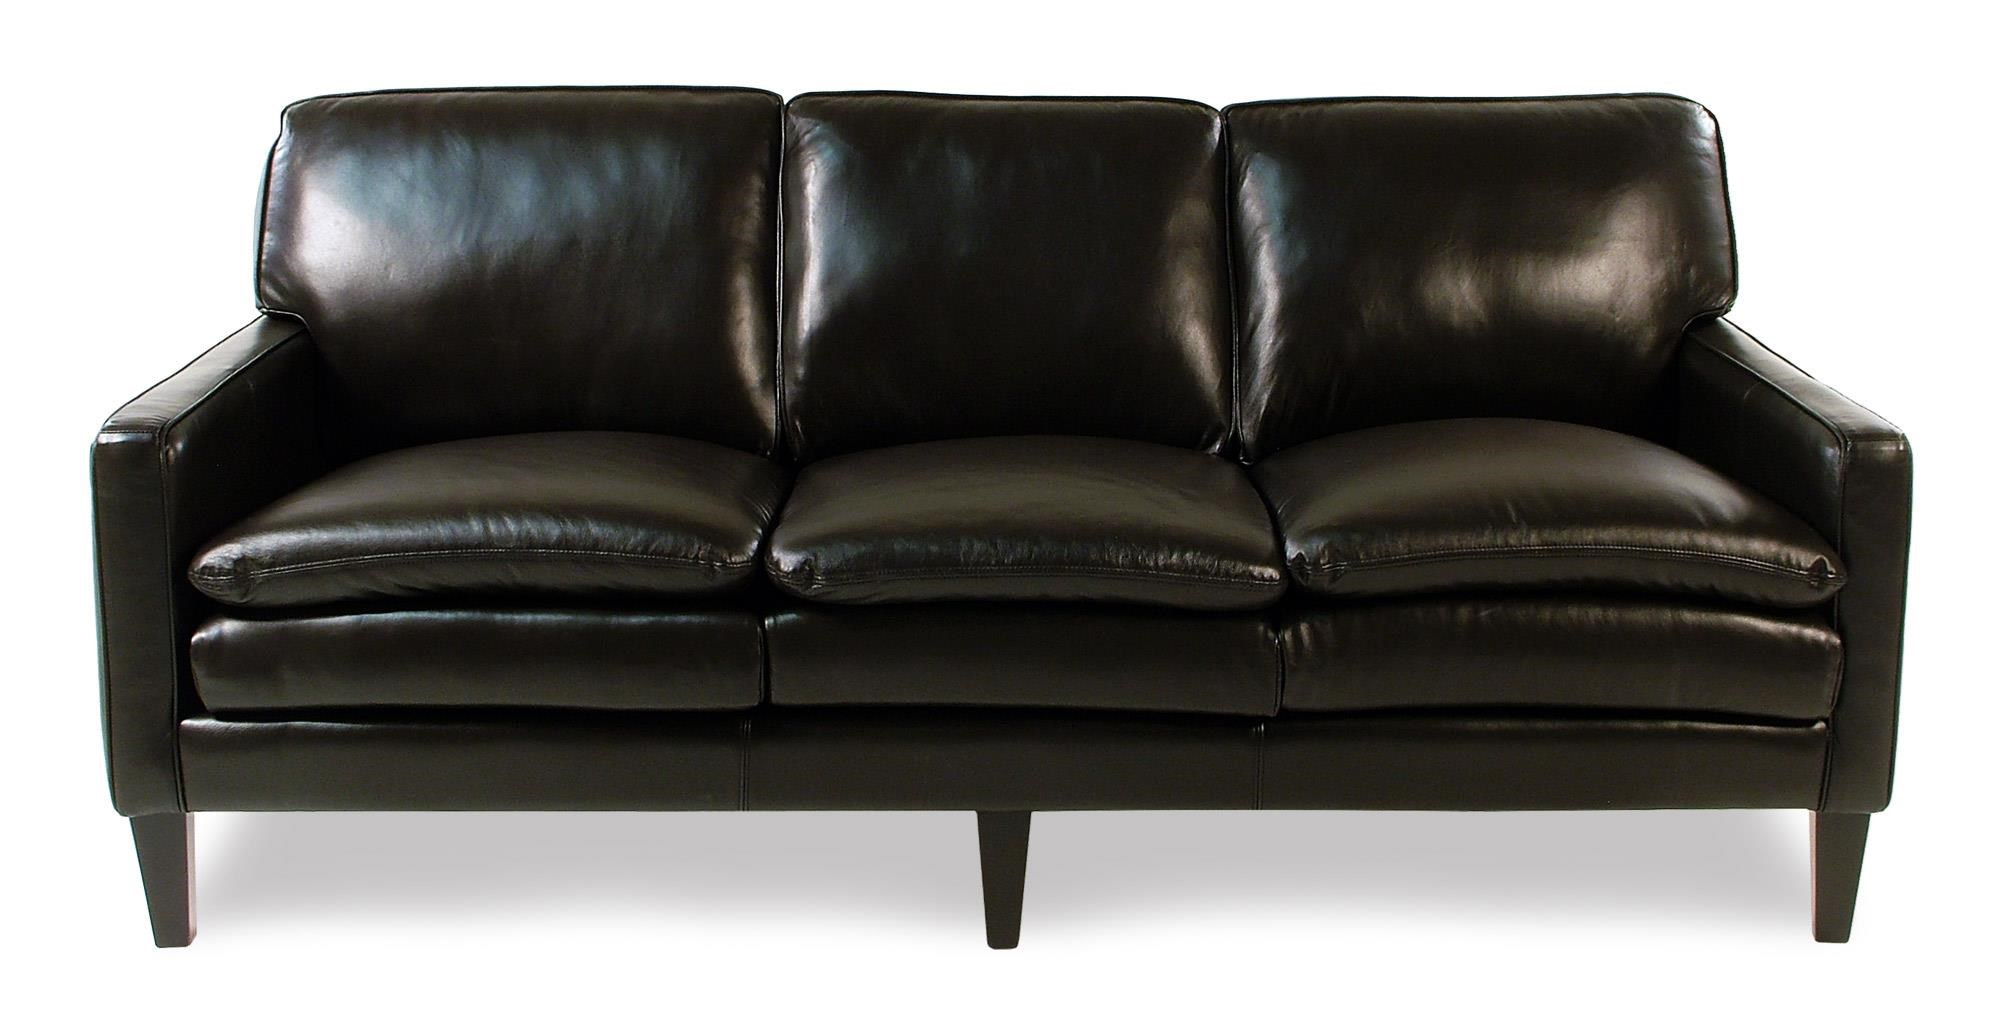 Decor-Rest Lorenzo Leather Sofa w/ Tapered Legs - Item Number: 3565S-ESPRESSO